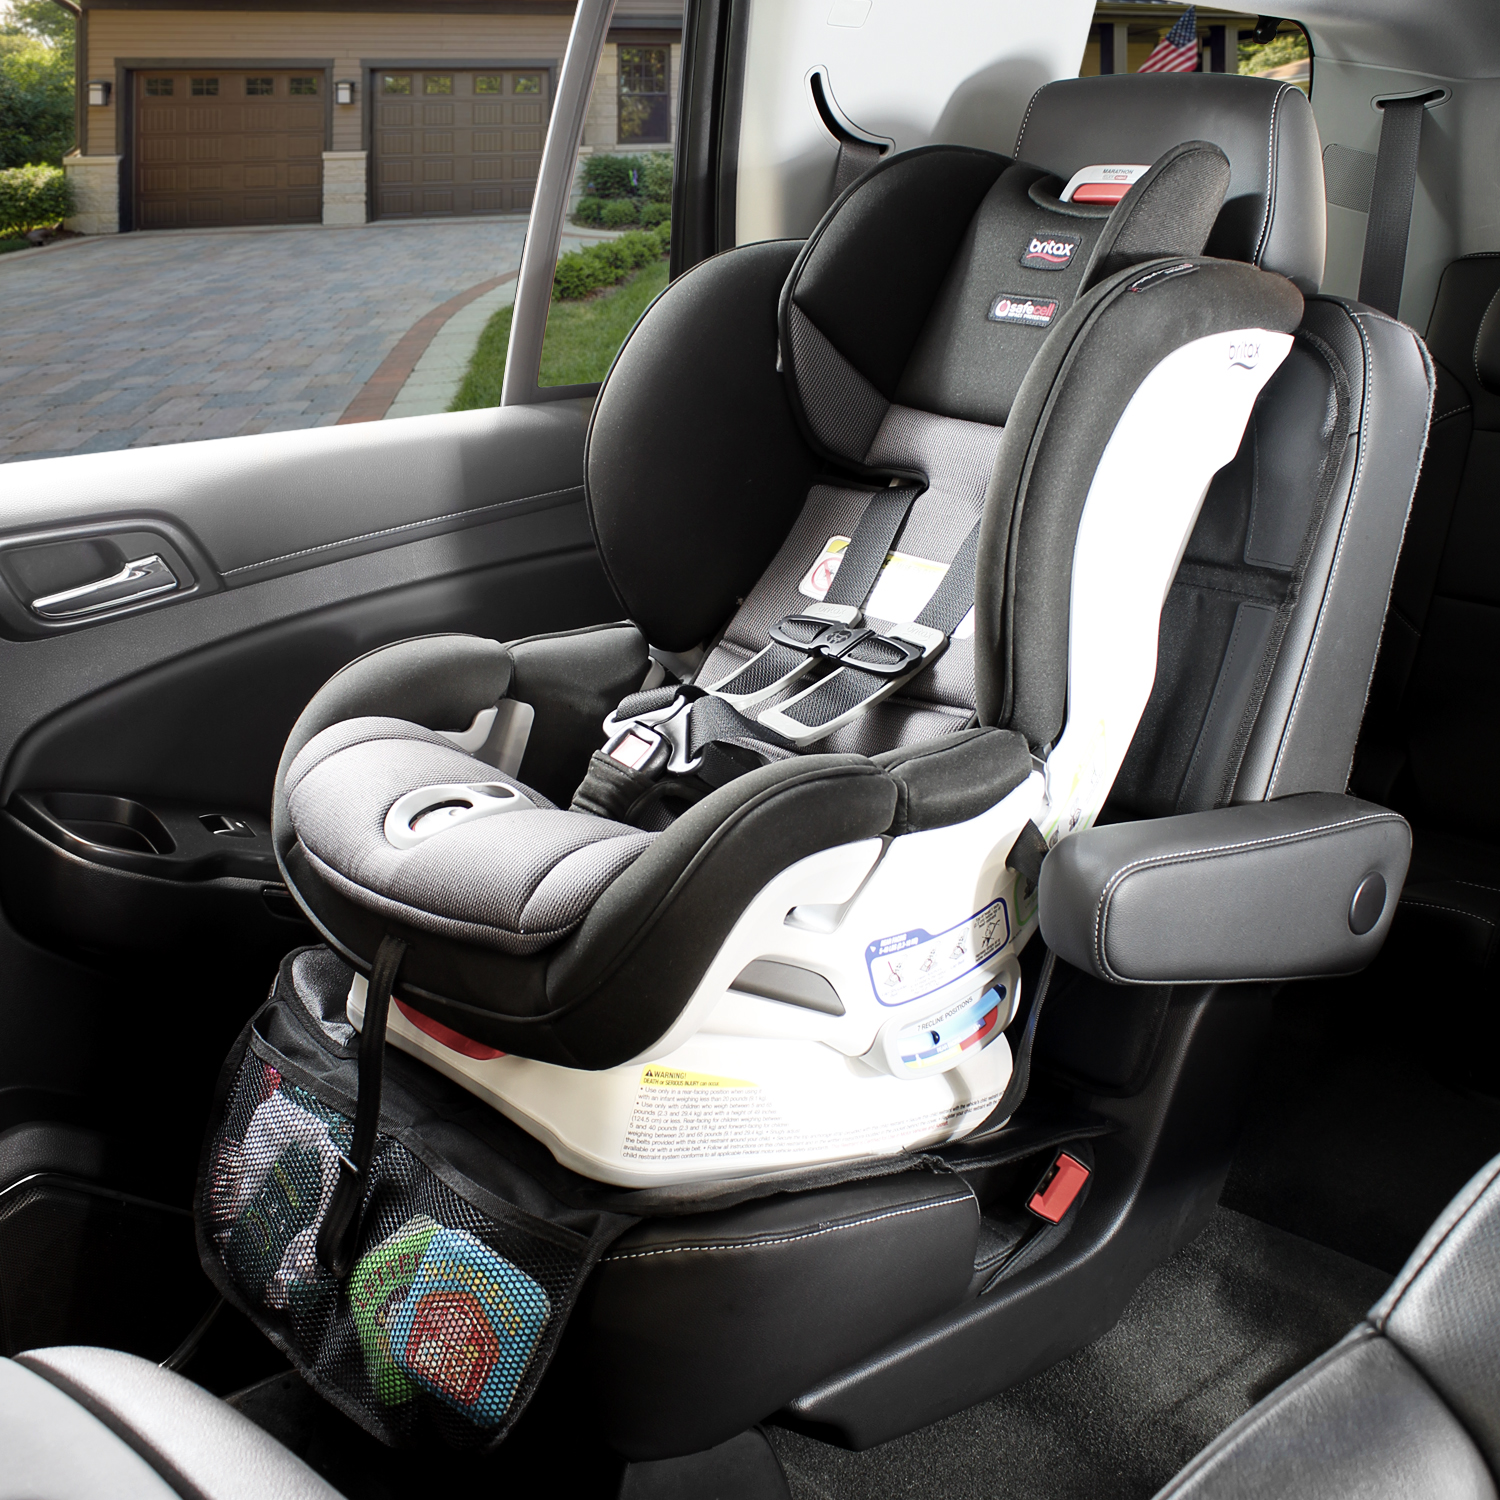 Best Fabric Protector For New Car Seats